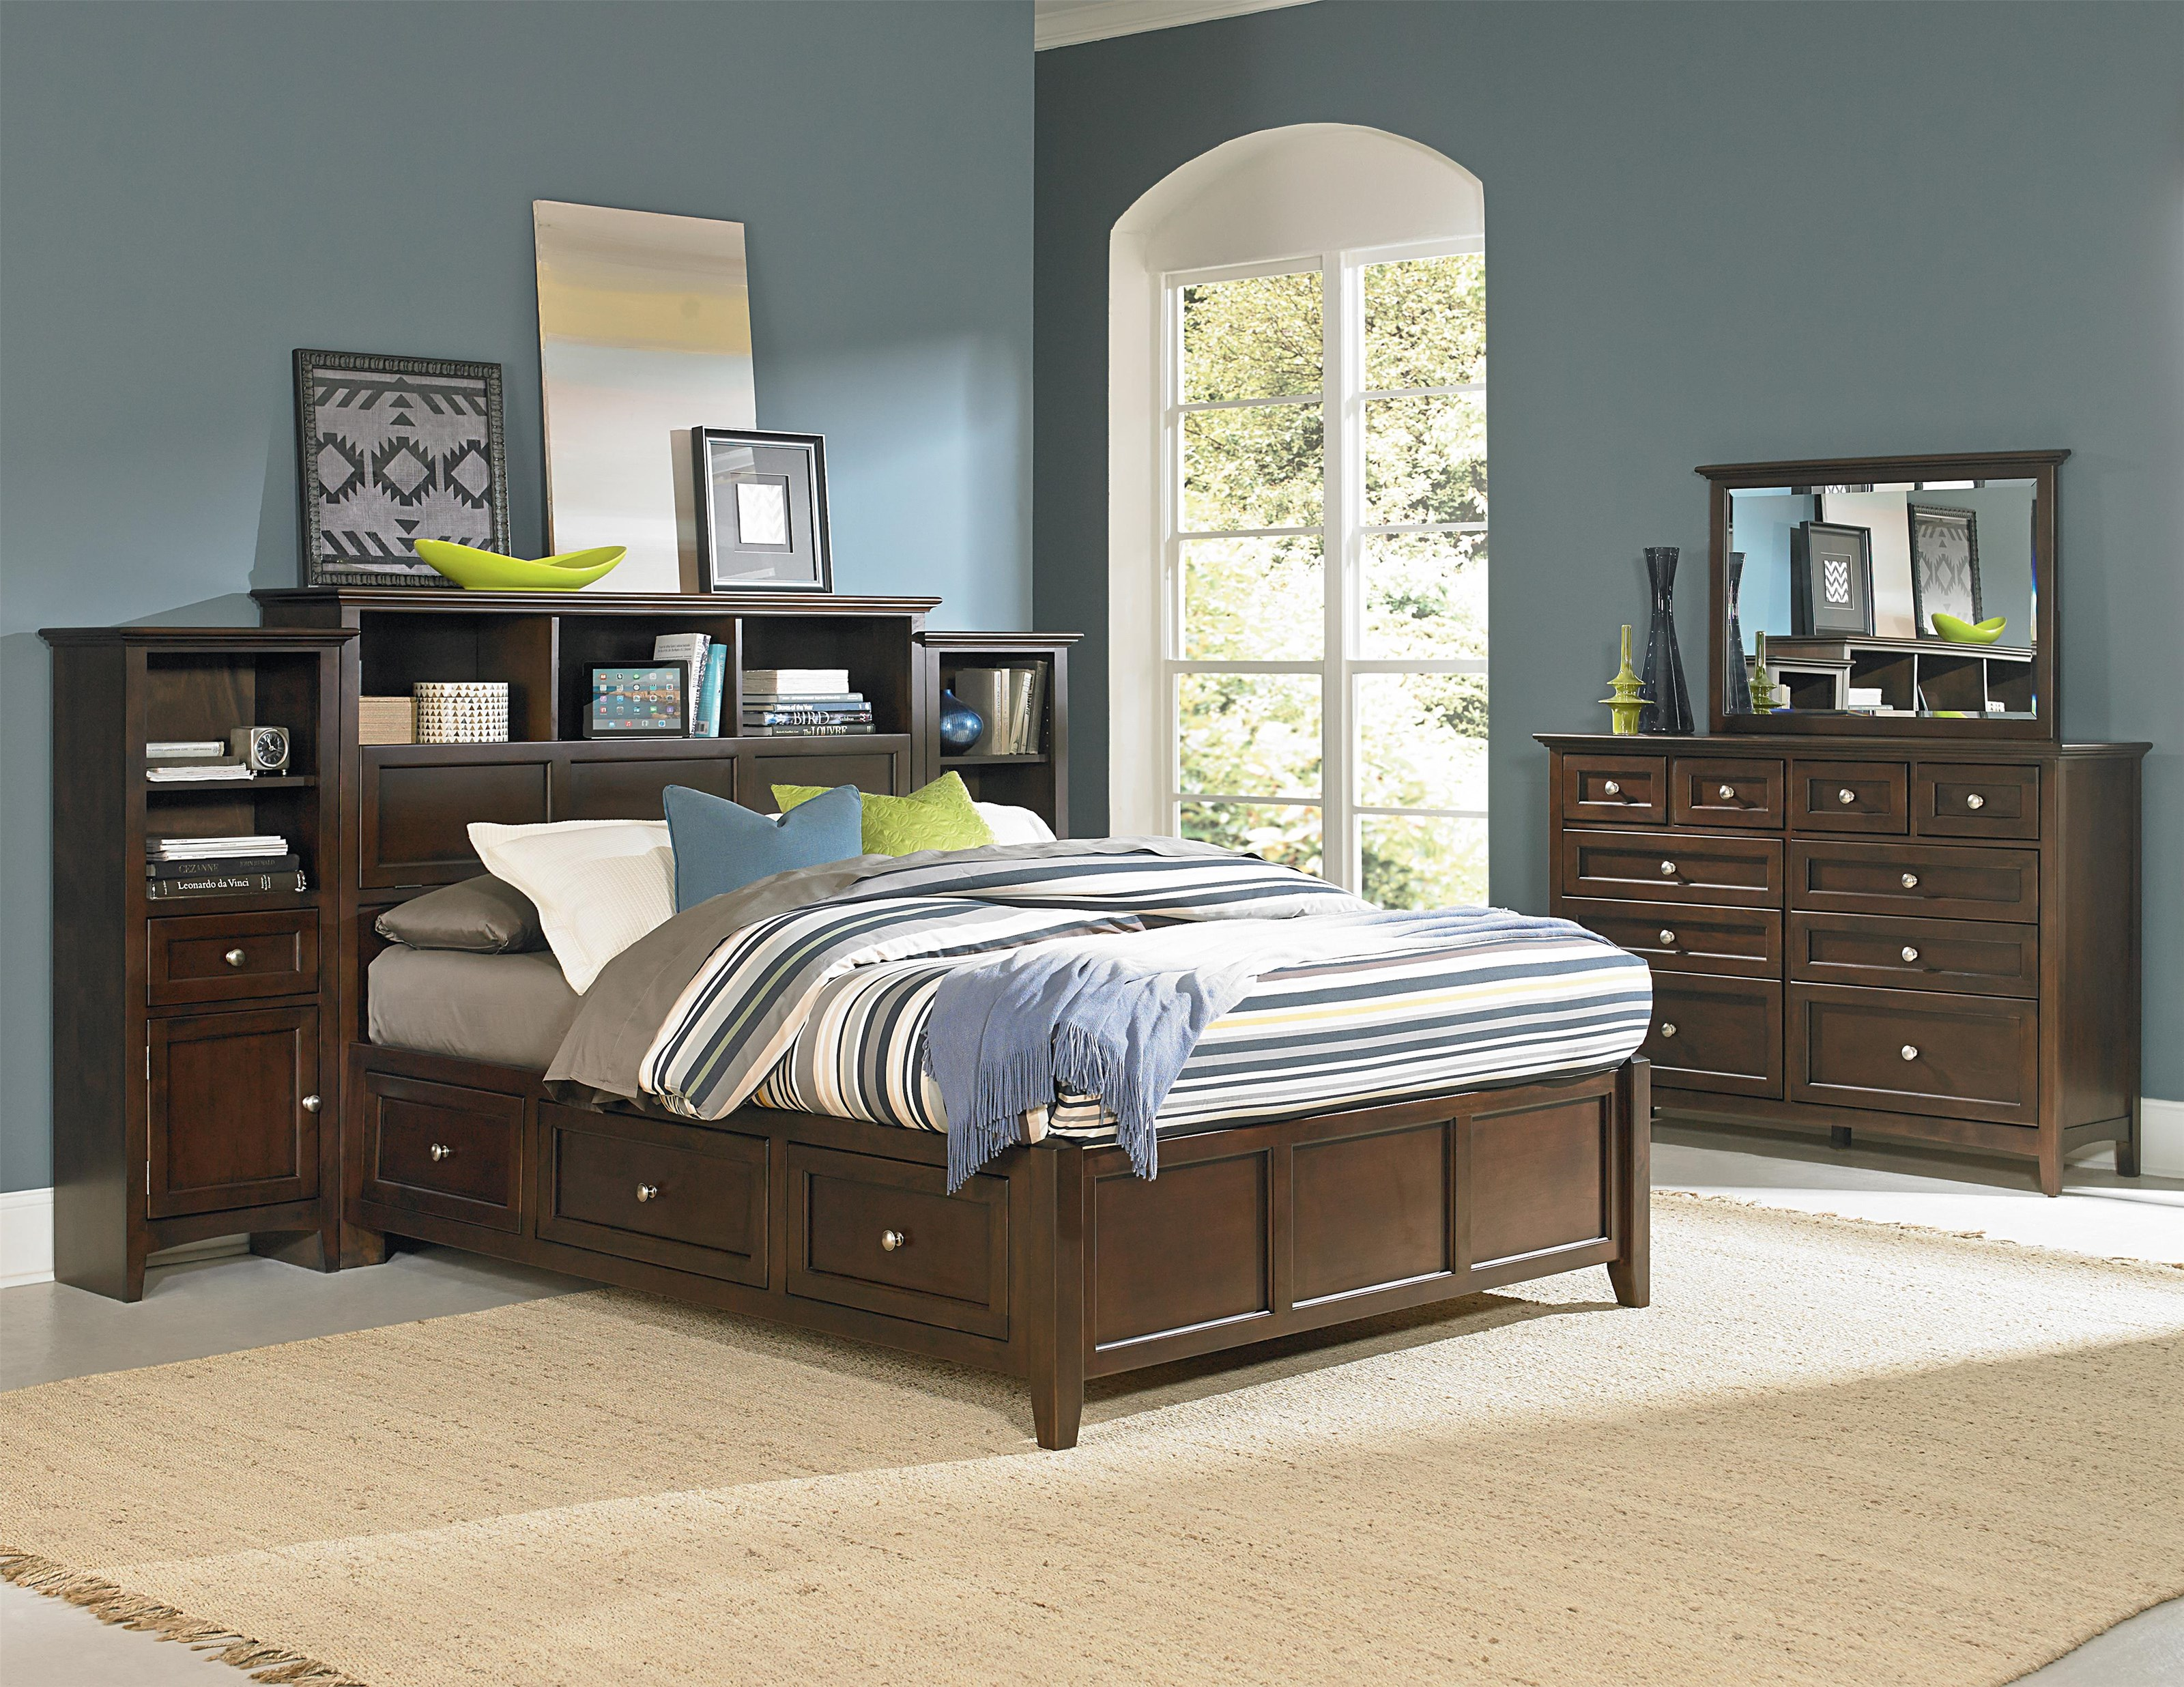 McKenzie Bedroom Group by Whittier Wood at Crowley Furniture & Mattress